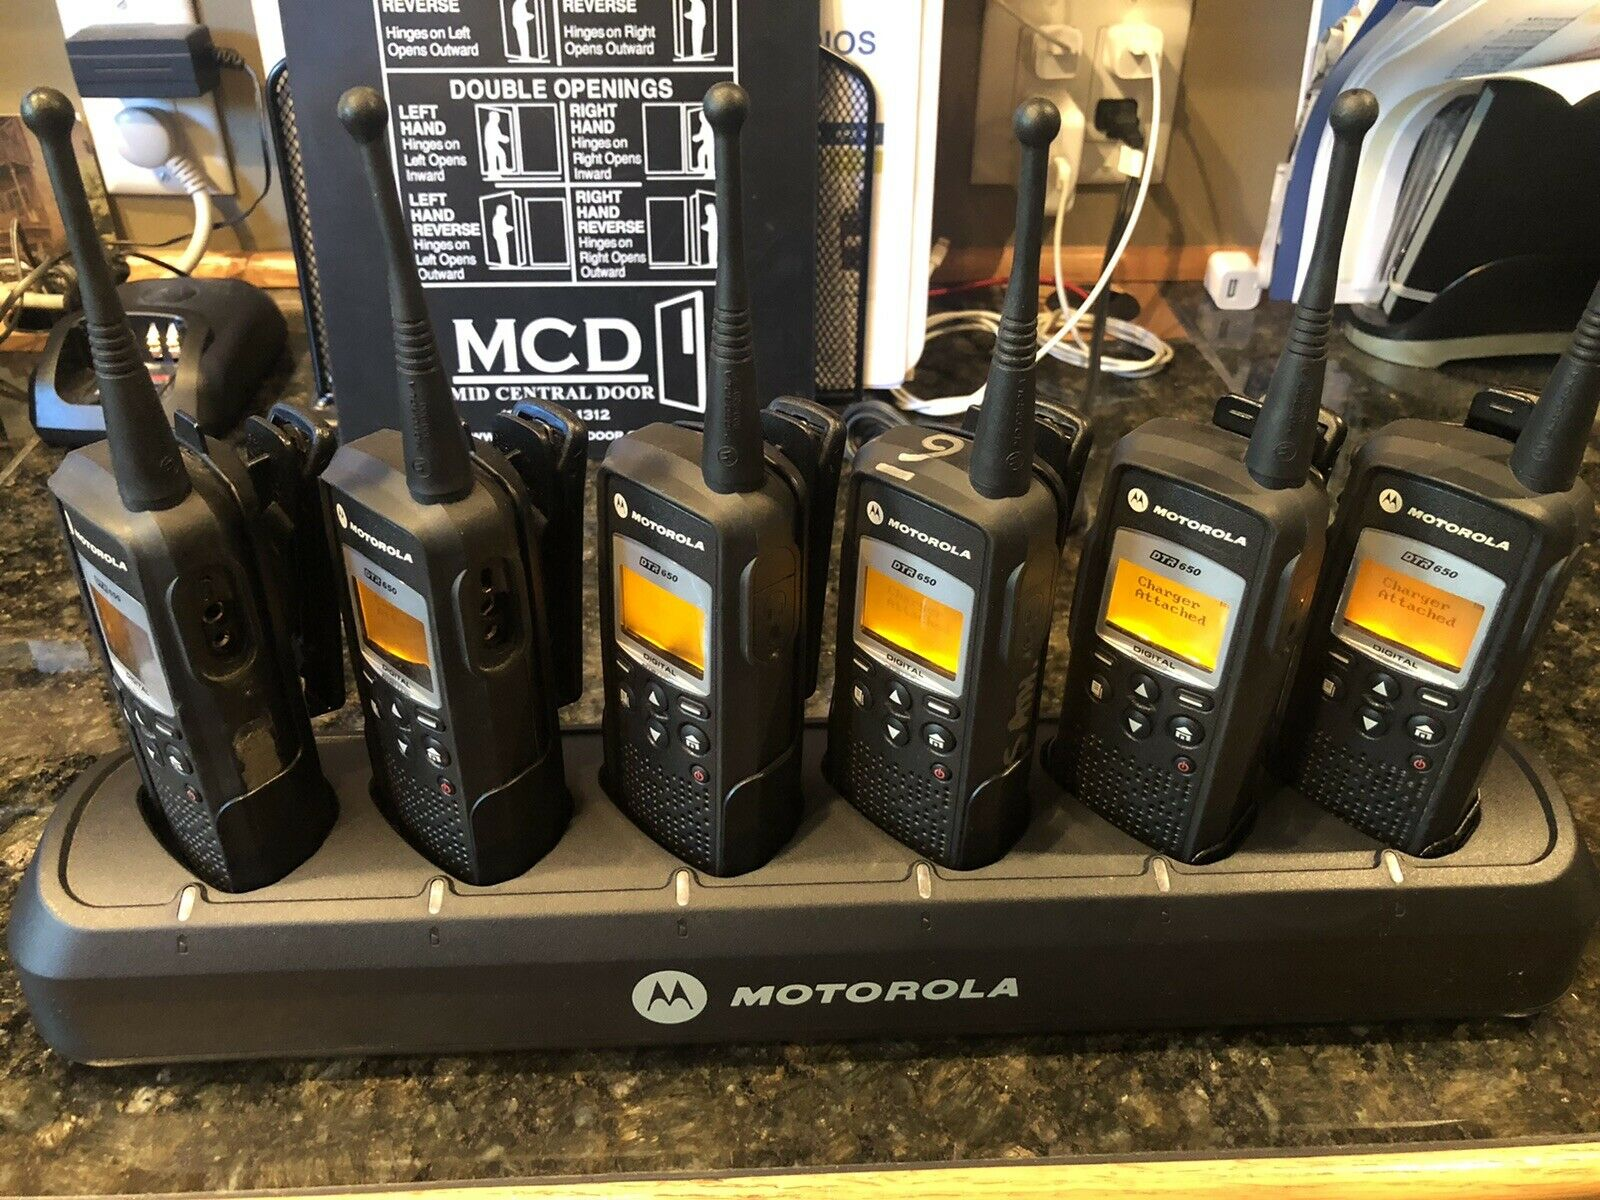 6 Motorola DTR650 Digital Portables with Accessories. Available Now for 659.00